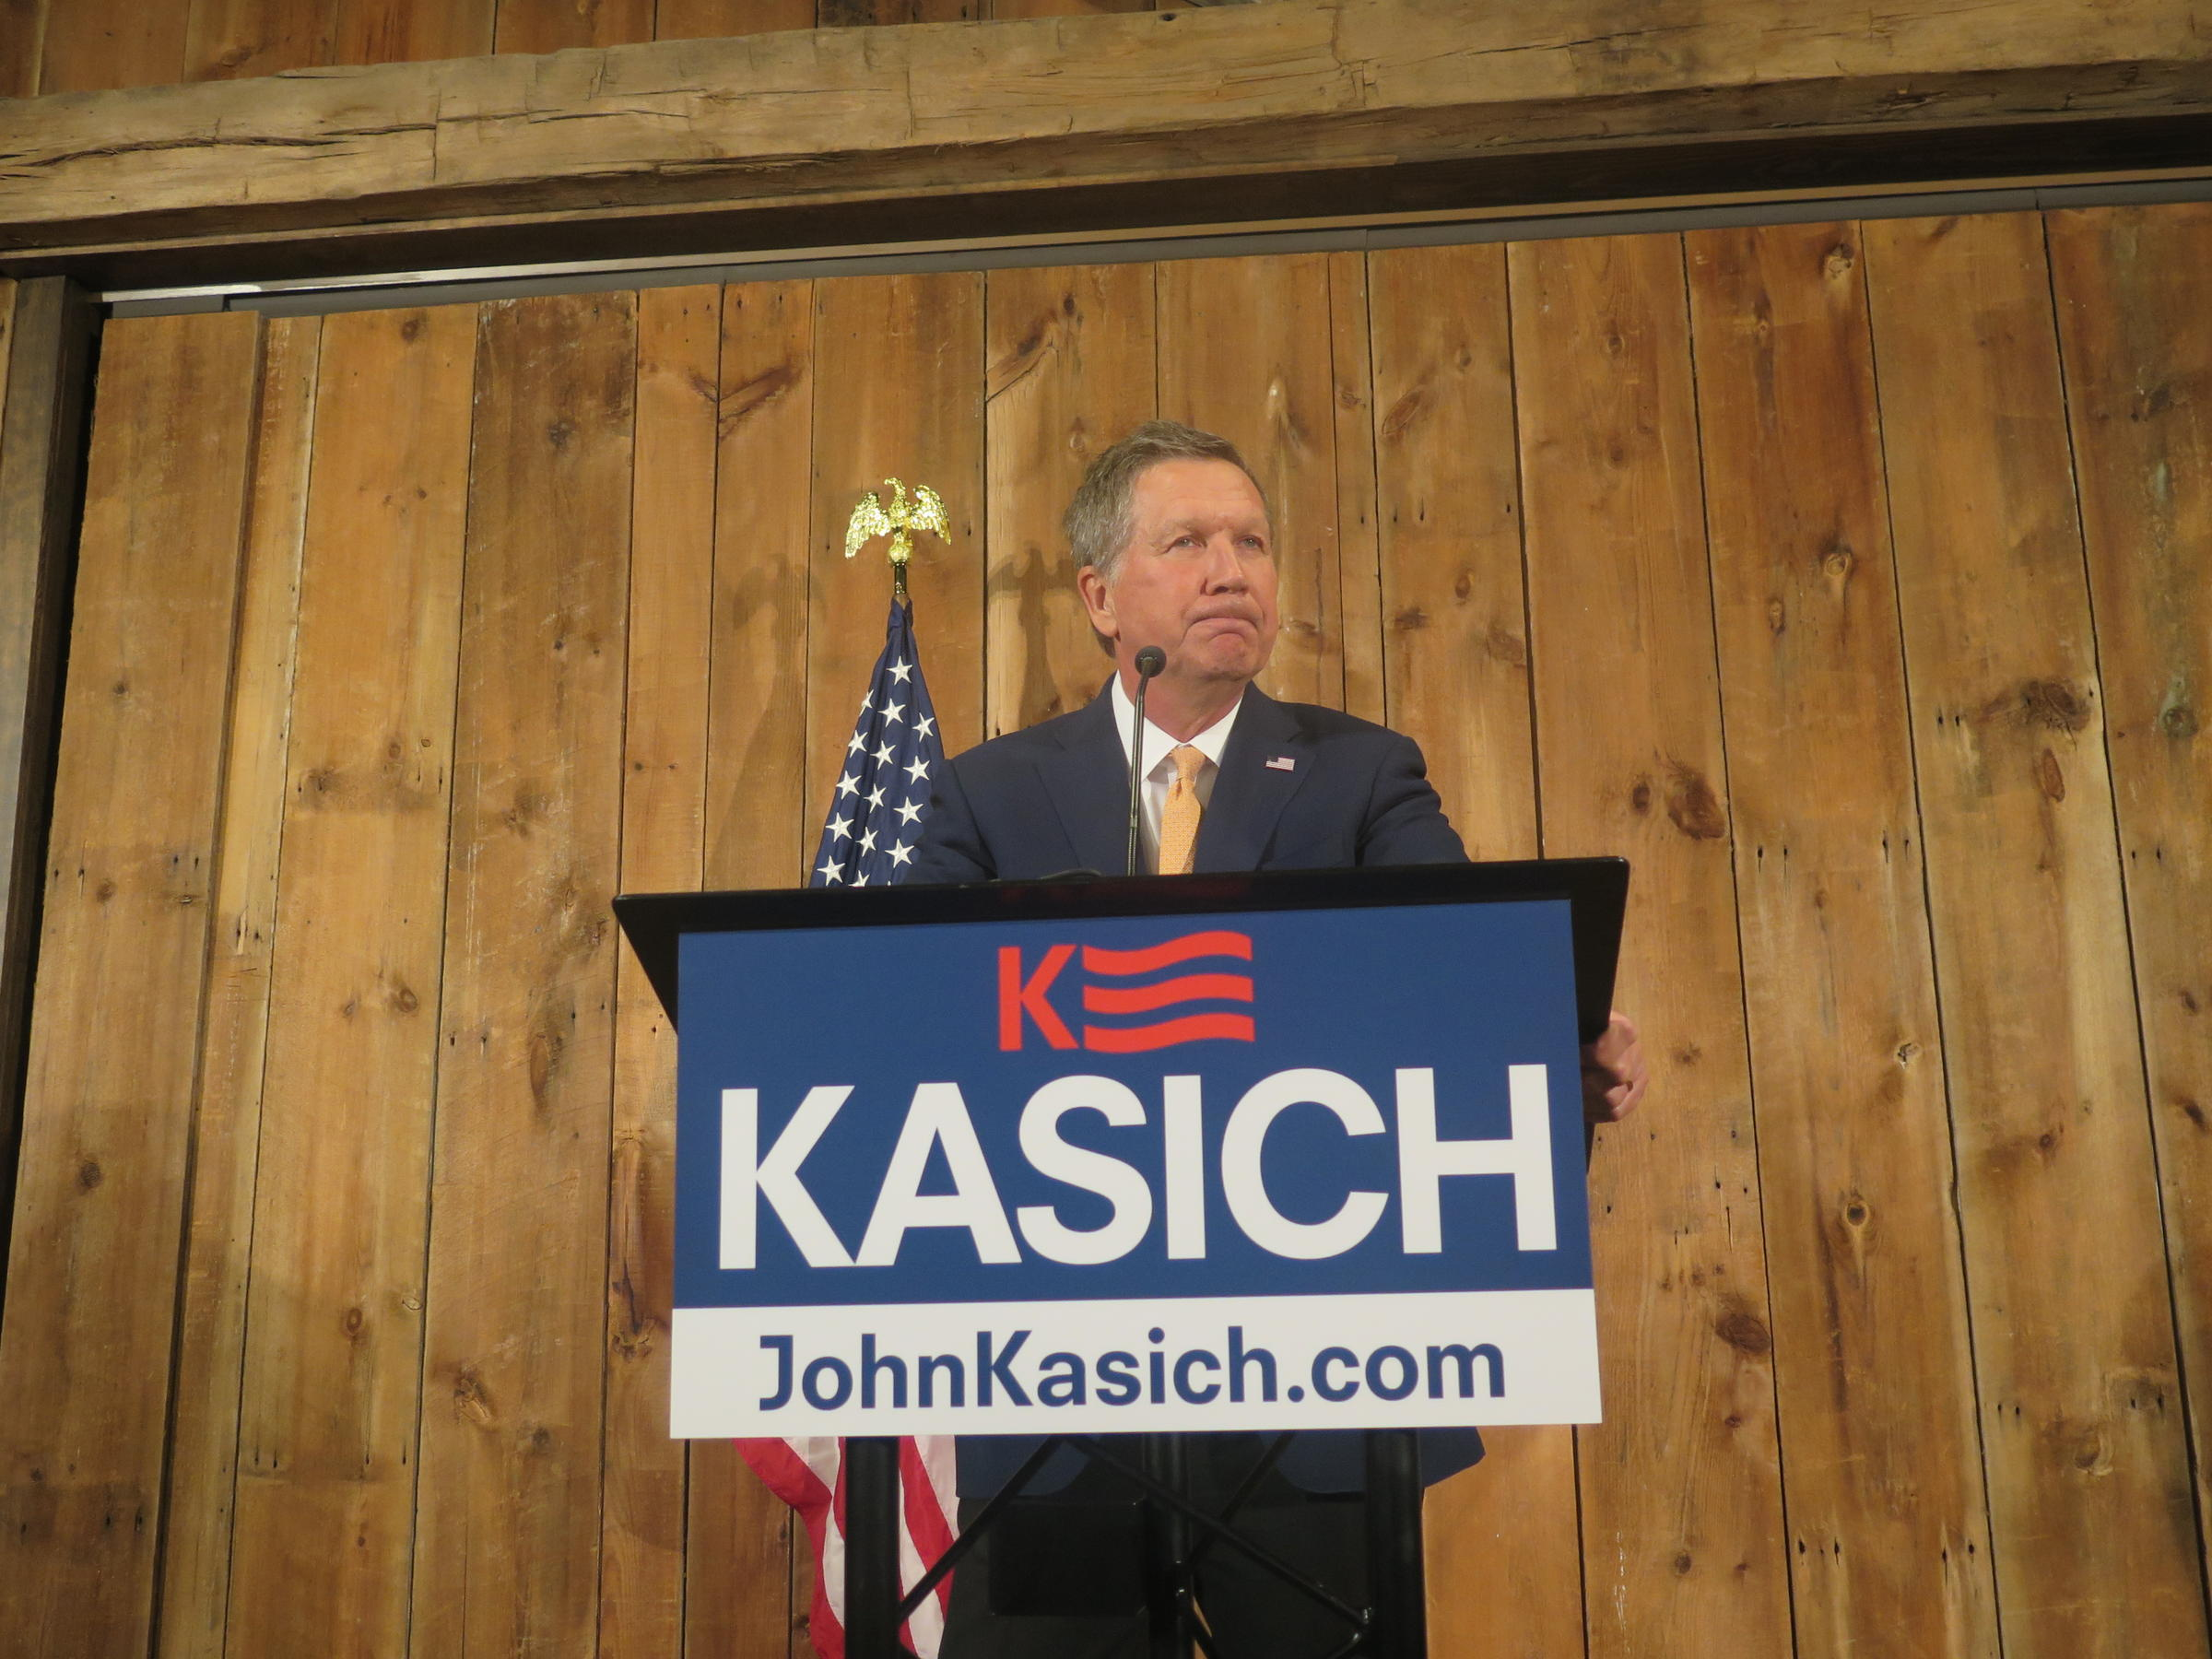 Kasich statement on Trump shows open wounds from campaign trail